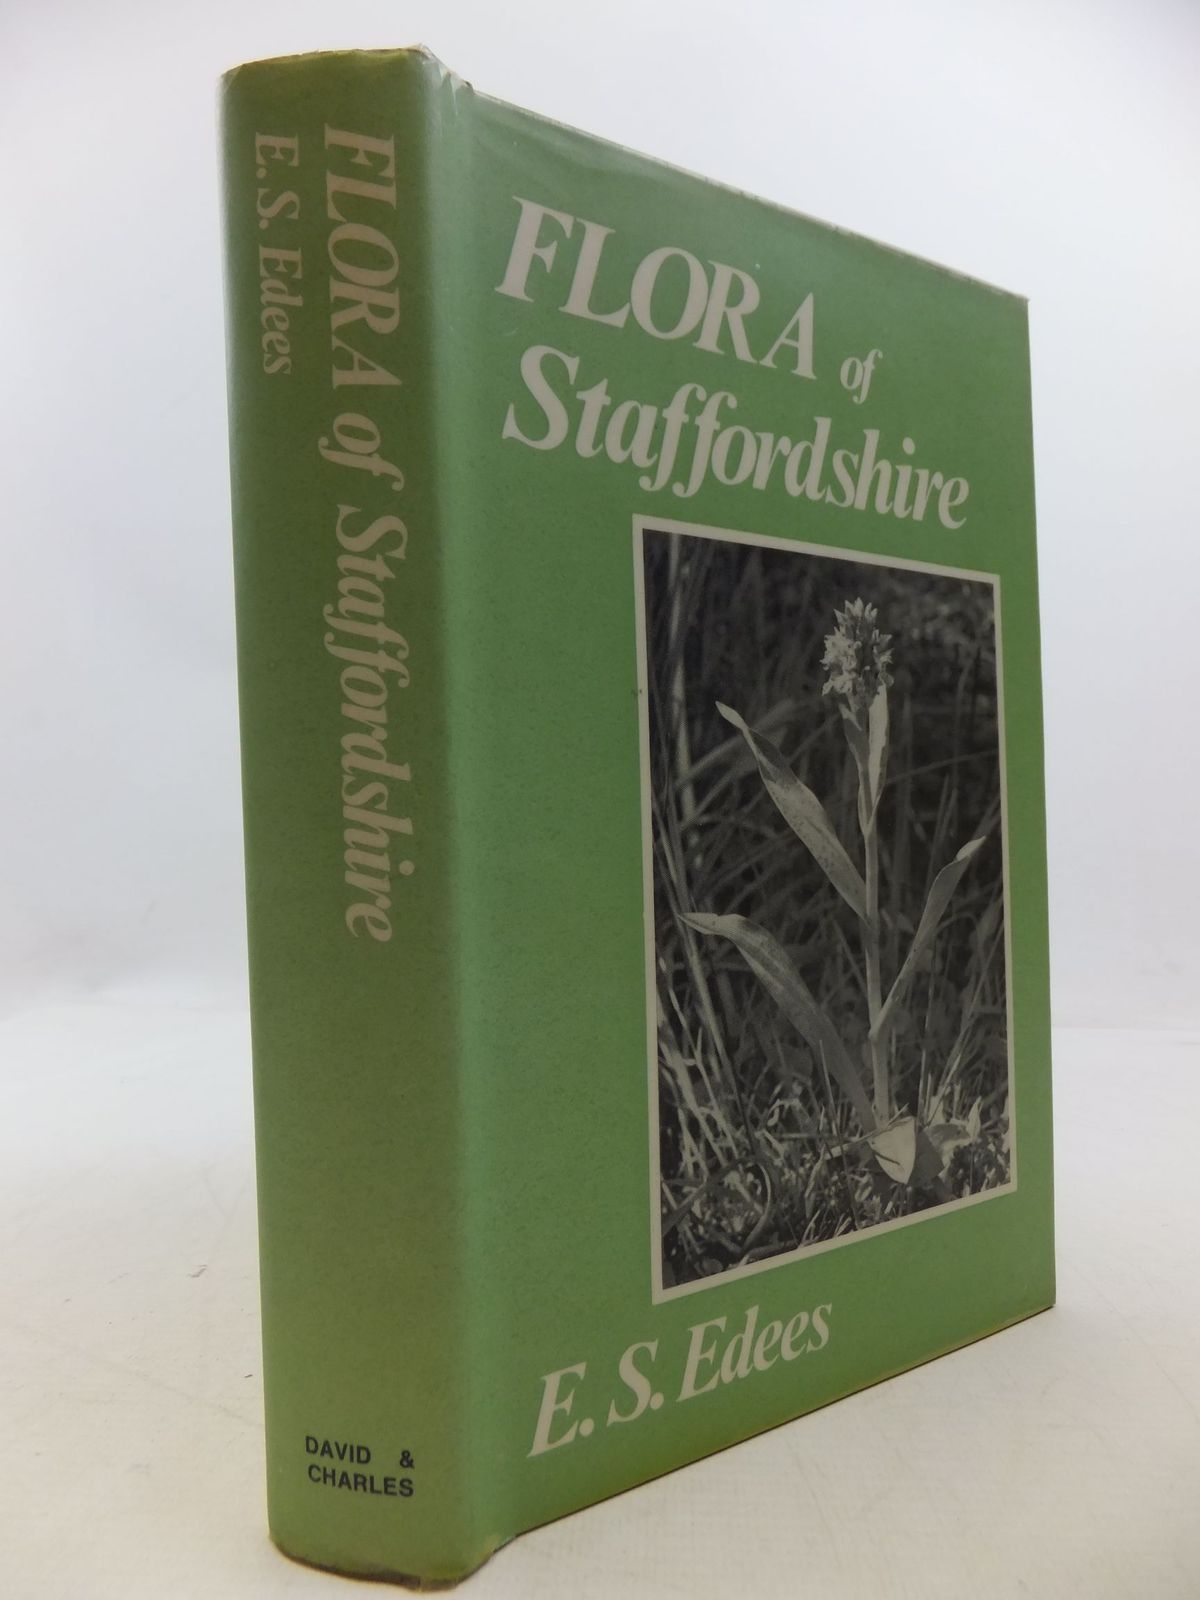 Photo of FLORA OF STAFFORDSHIRE written by Edees, E.S. published by David & Charles (STOCK CODE: 2112308)  for sale by Stella & Rose's Books